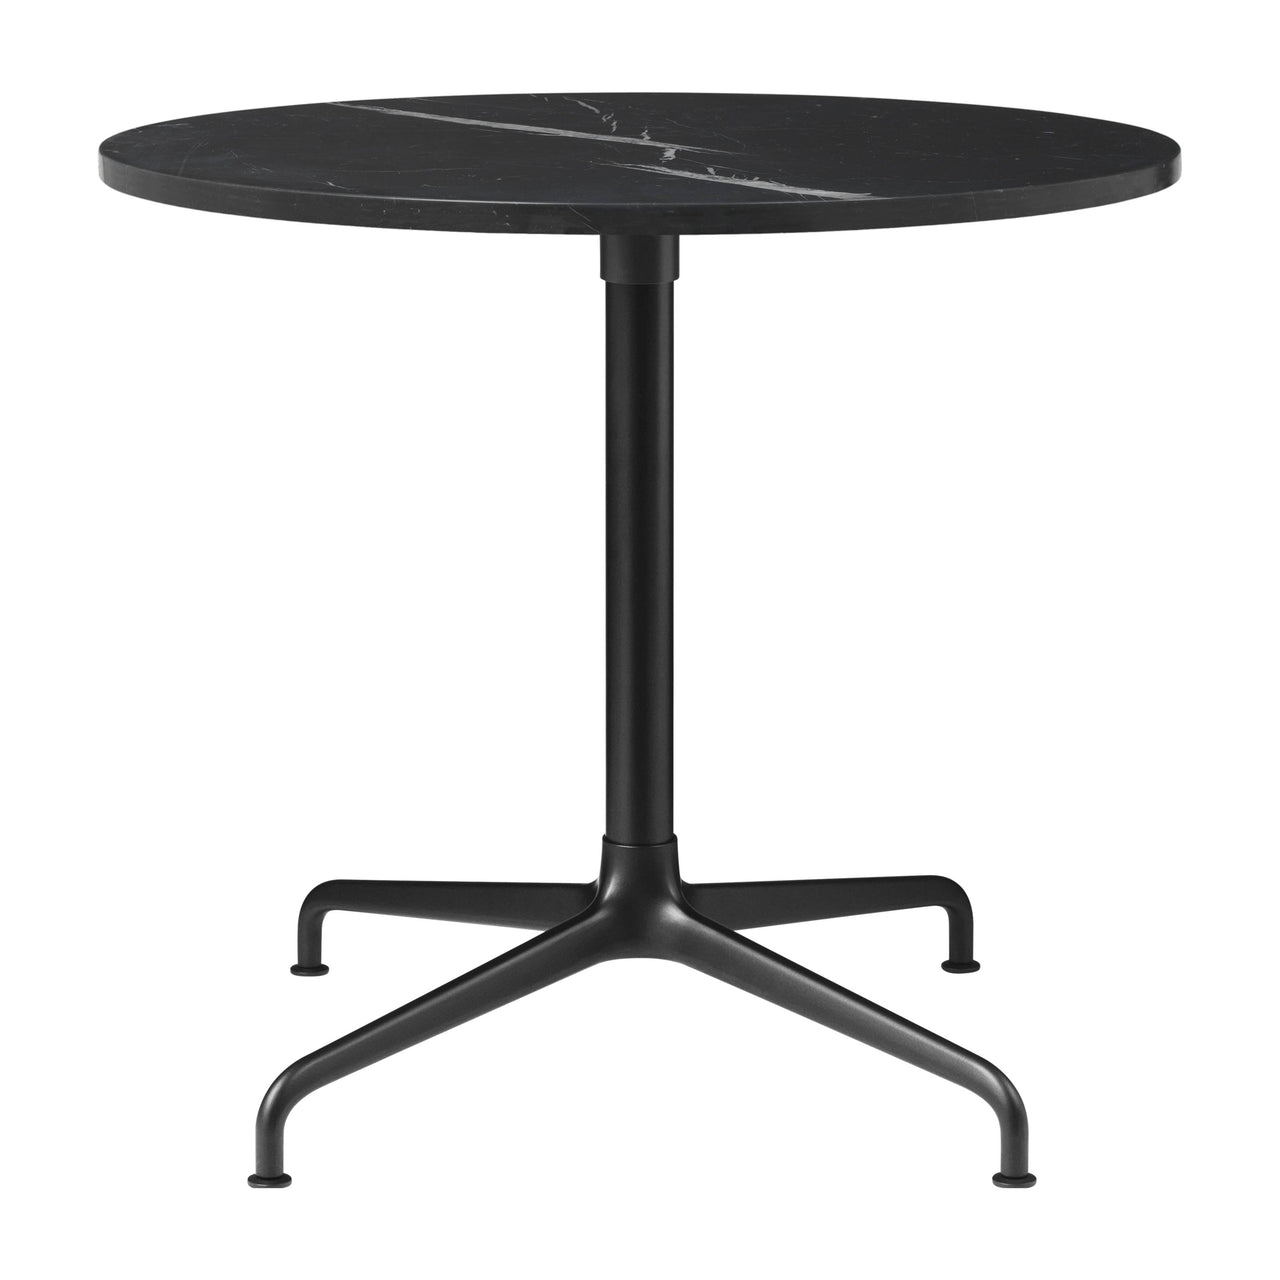 Beetle Lounge Table: Round + Small + Black Marquina Marble + Black Matte Base